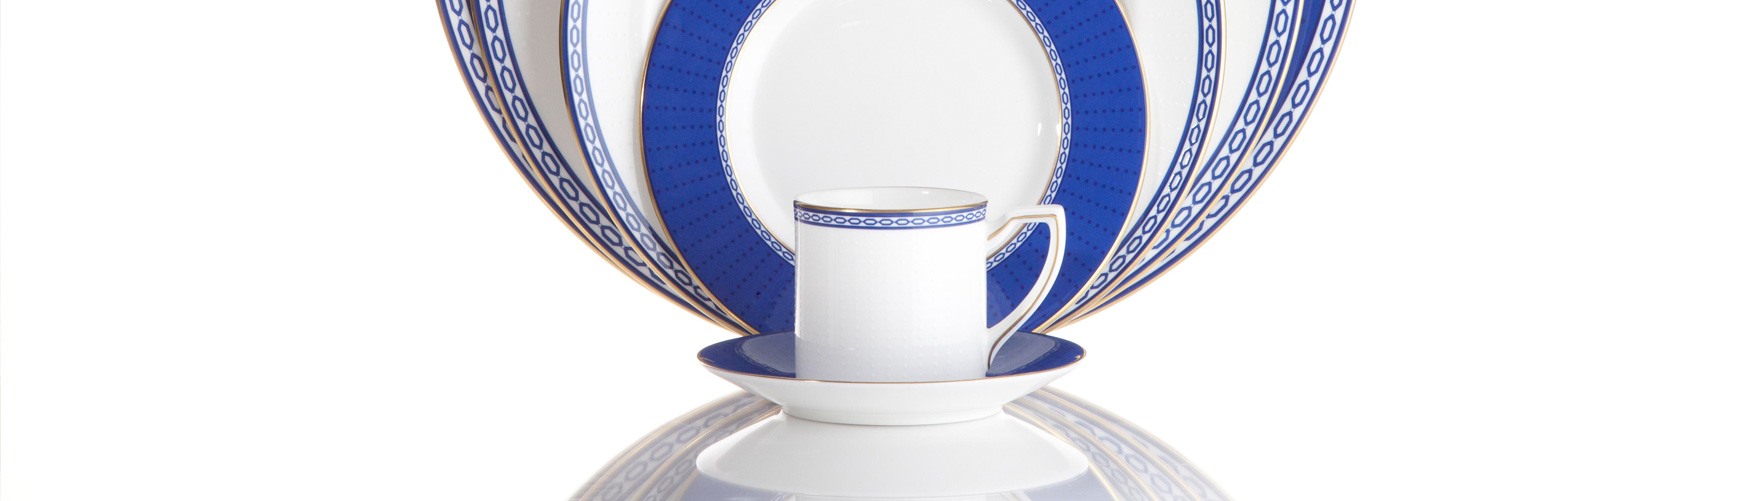 Captivating Walpole Fine Bone China | Manufacturer Of Luxurious High Quality Bone China  In England, UK